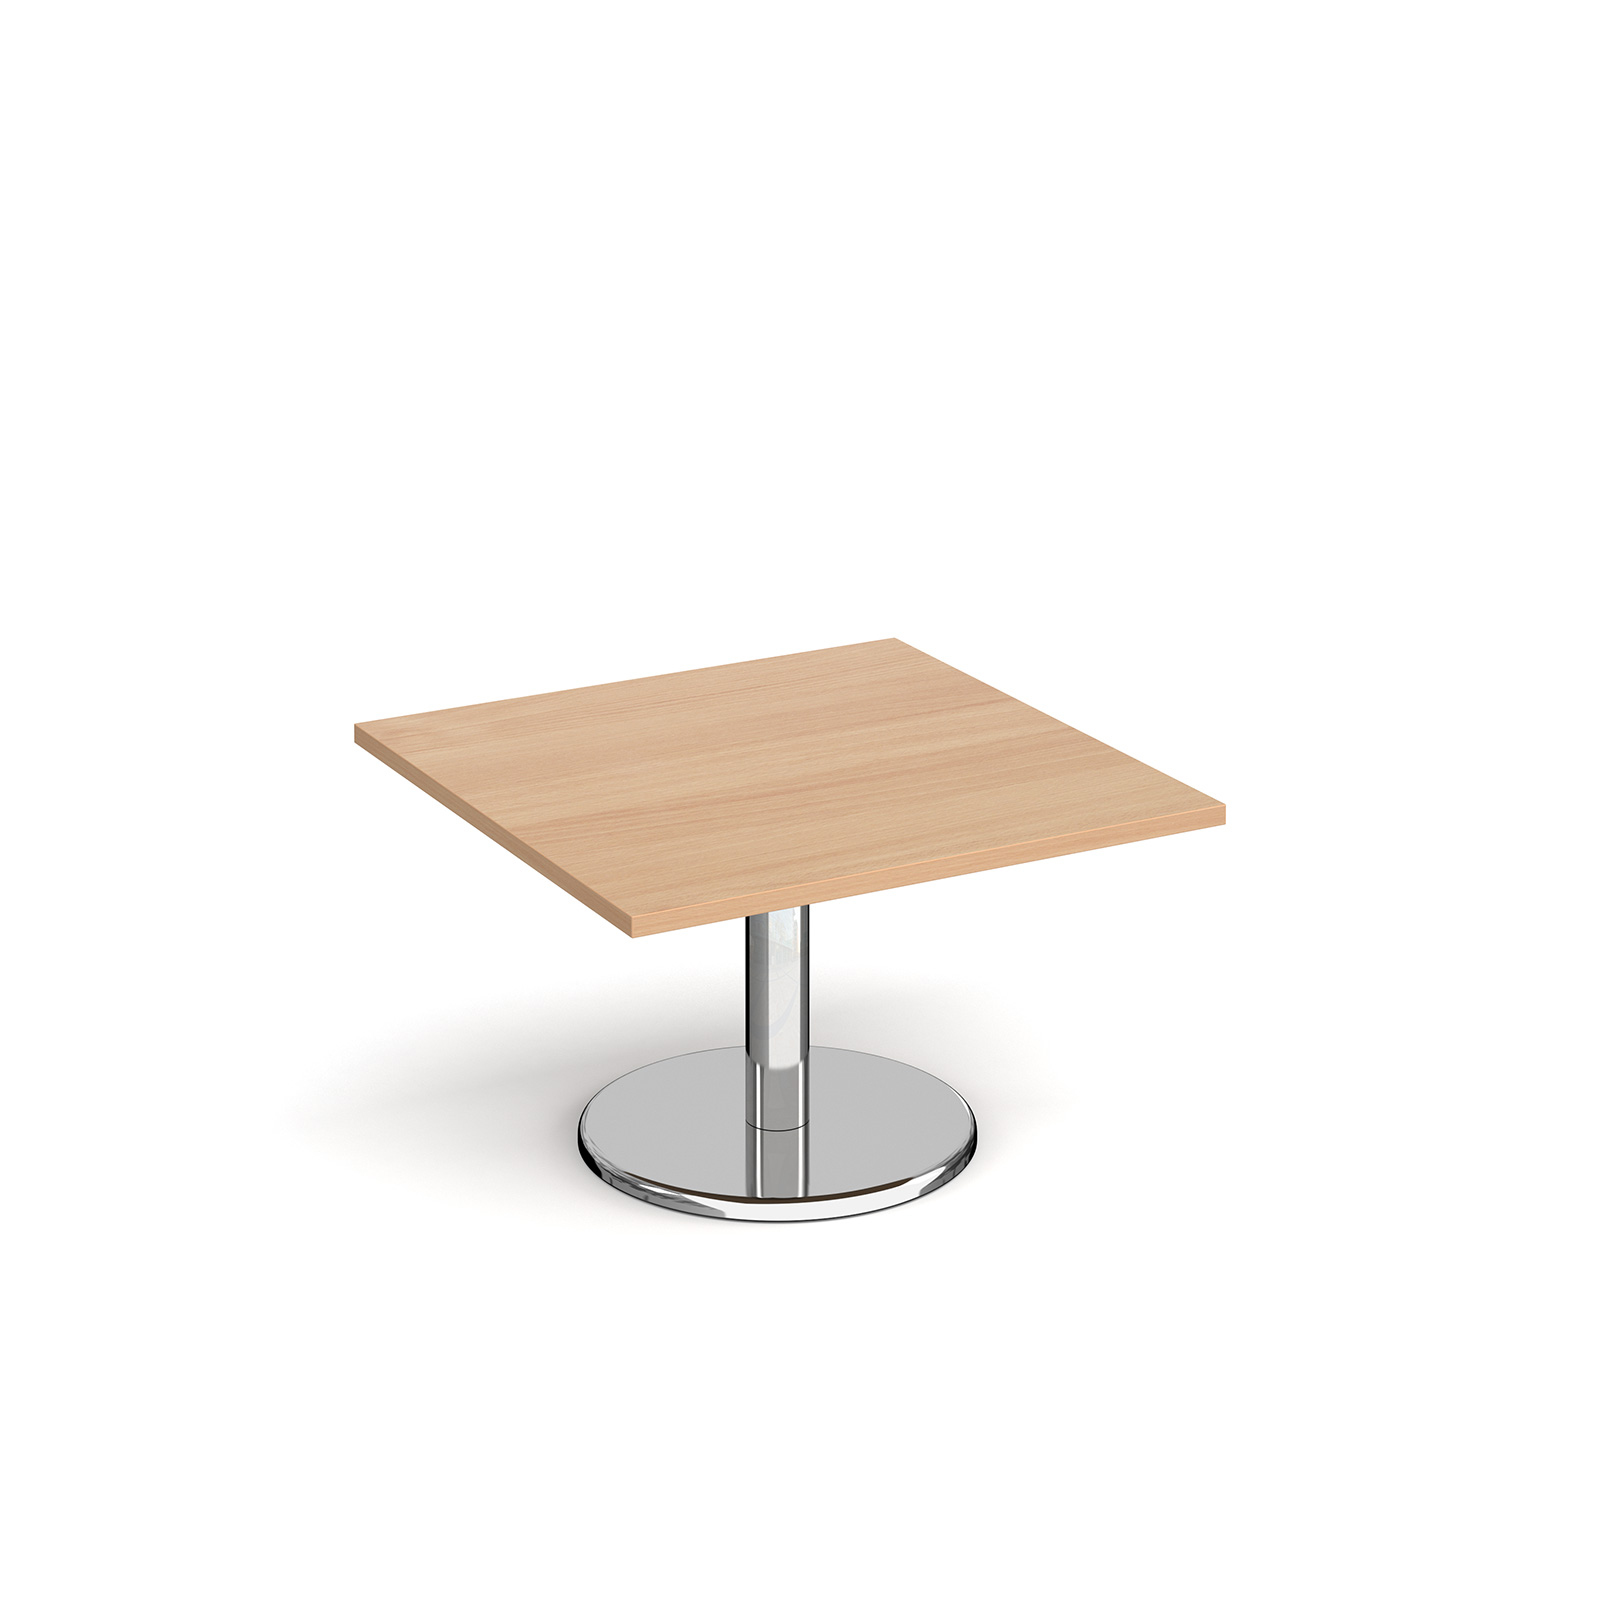 Coffee Pisa square coffee table with round base